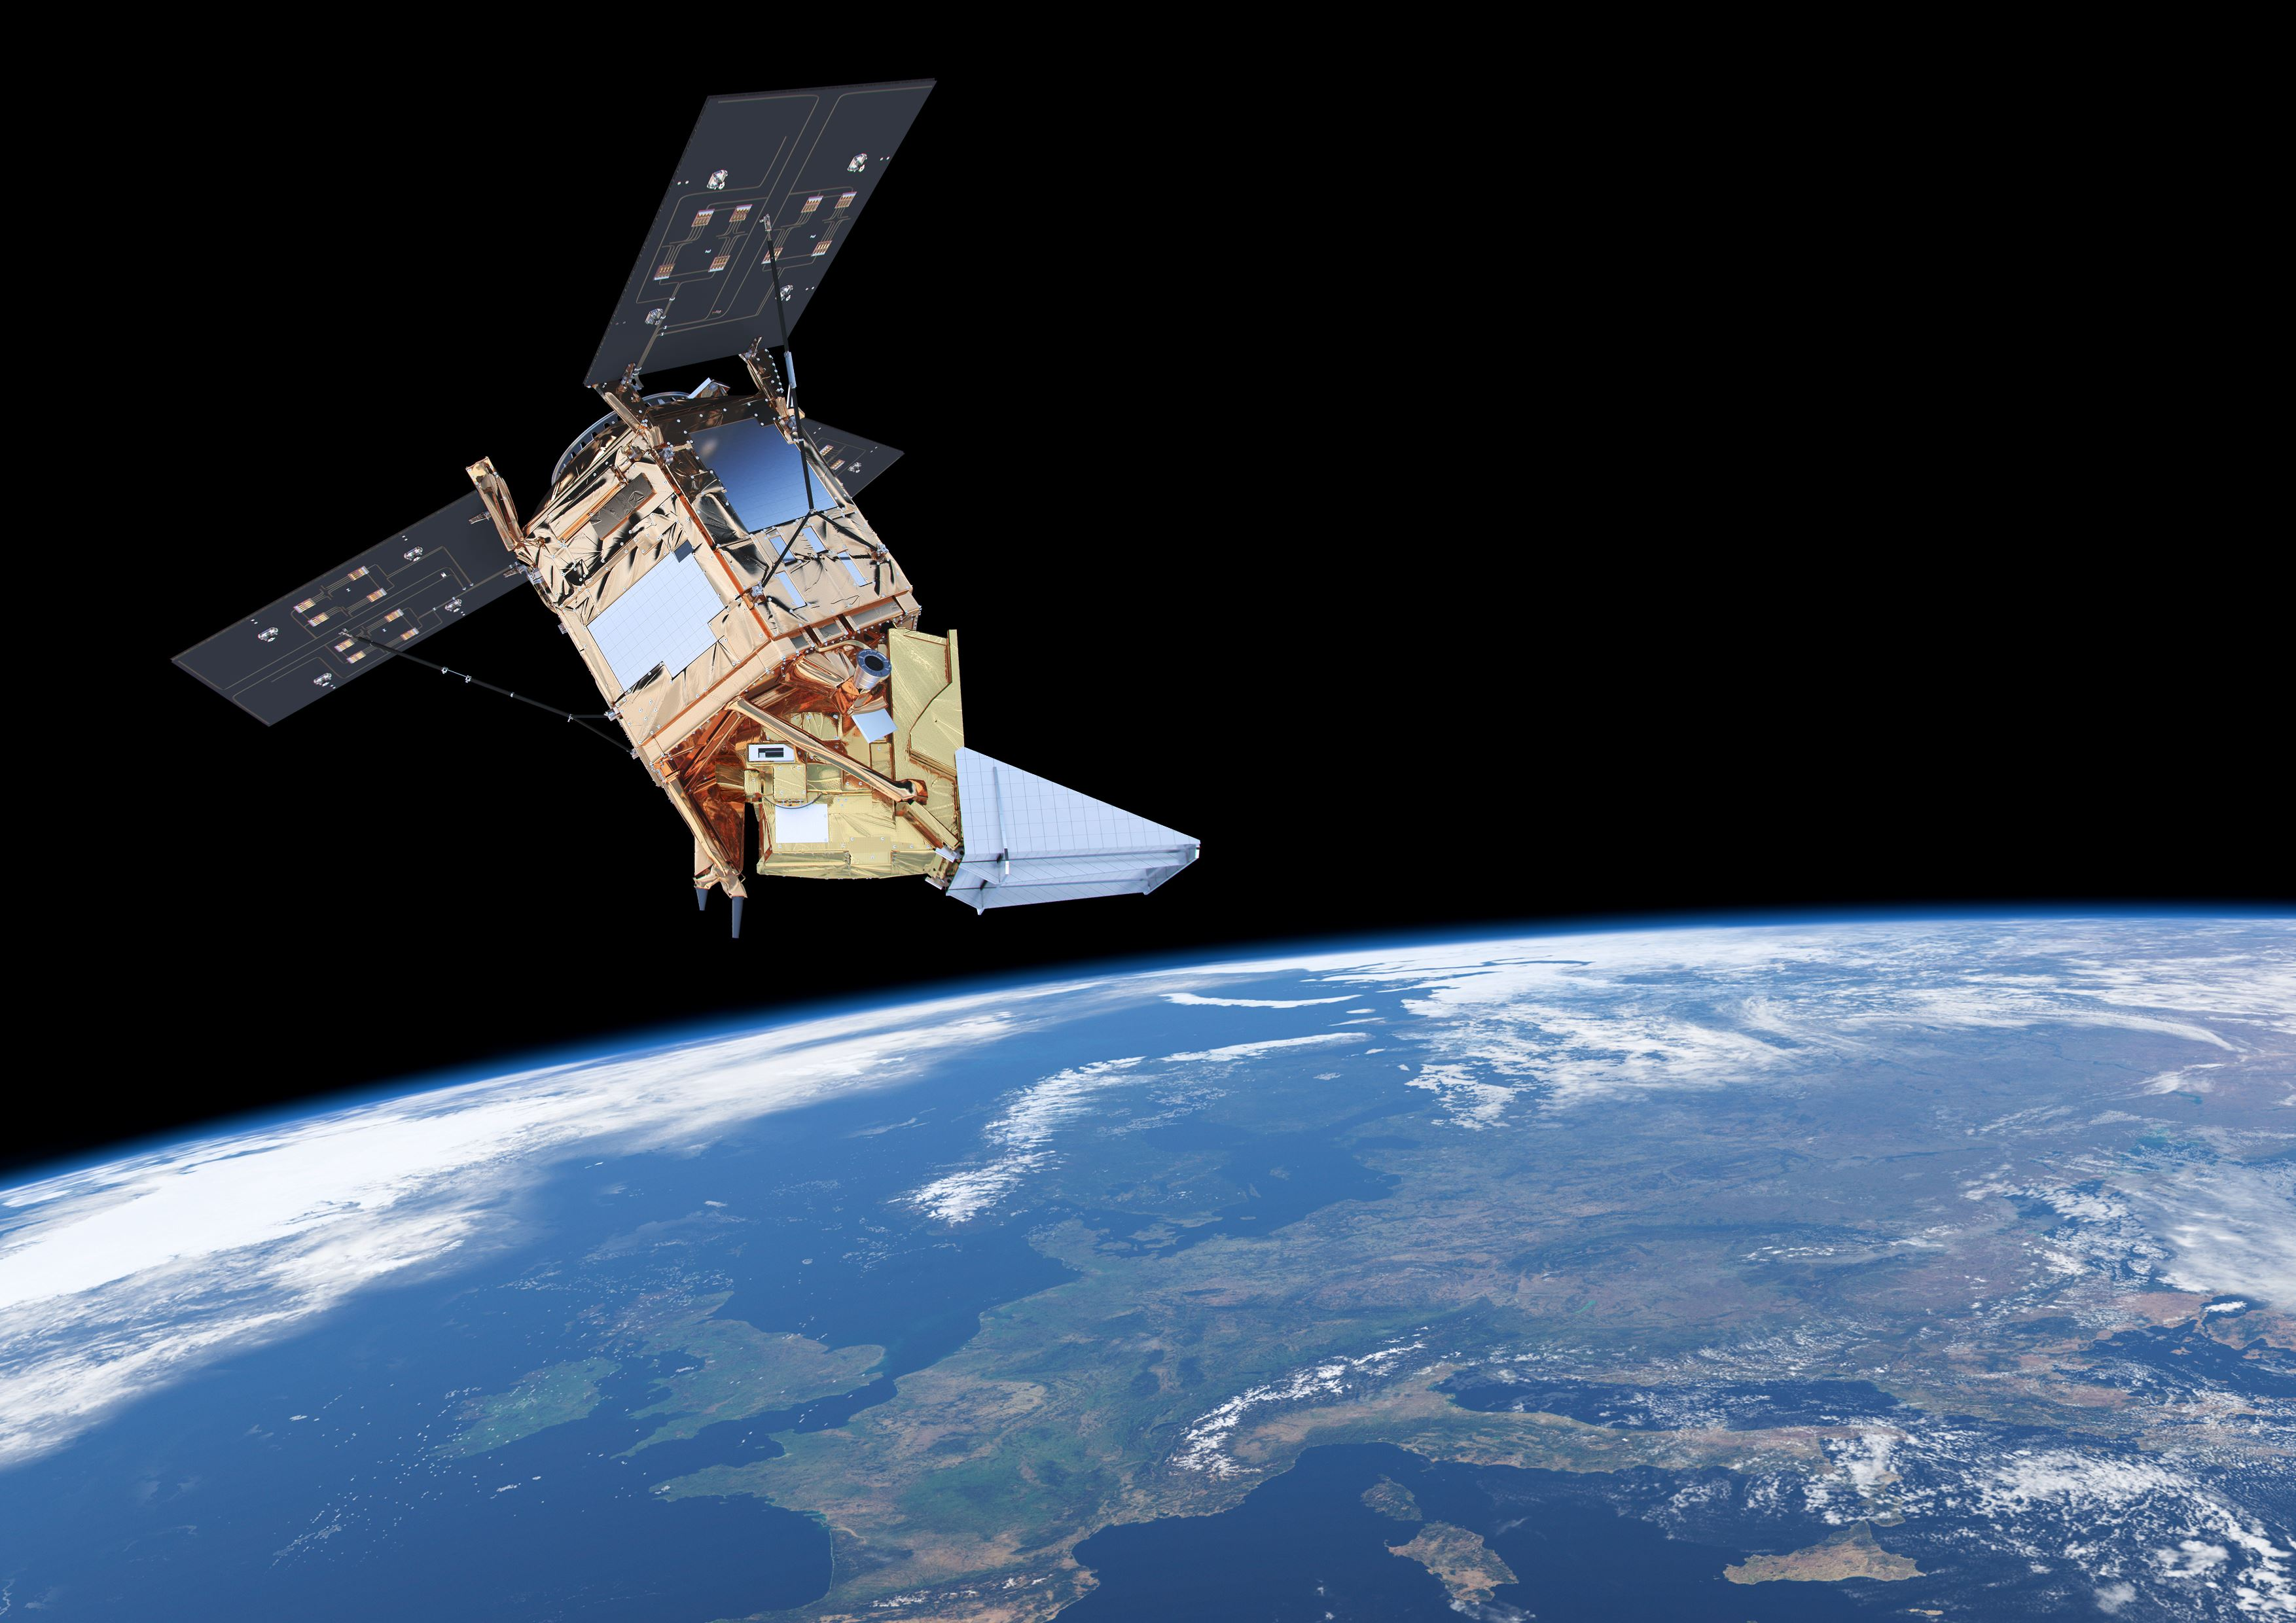 space in images 2017 06 sentinel5p